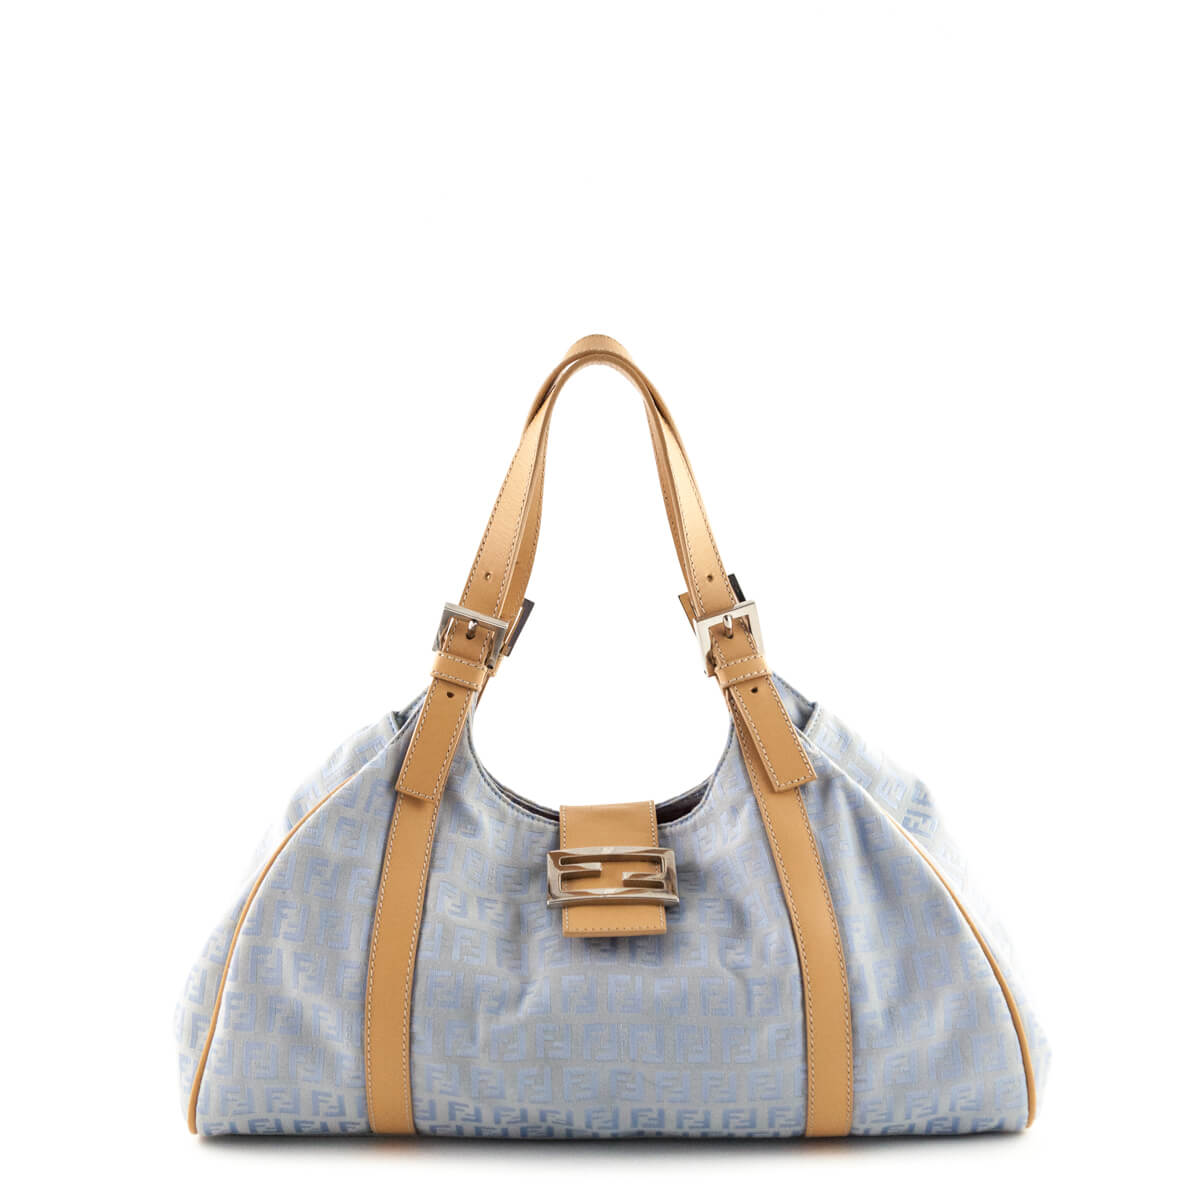 5df48ad88b6b Fendi Celeste Naturale Zucca Canvas Shoulder Bag - LOVE that BAG - Preowned  Authentic Designer Handbags ...